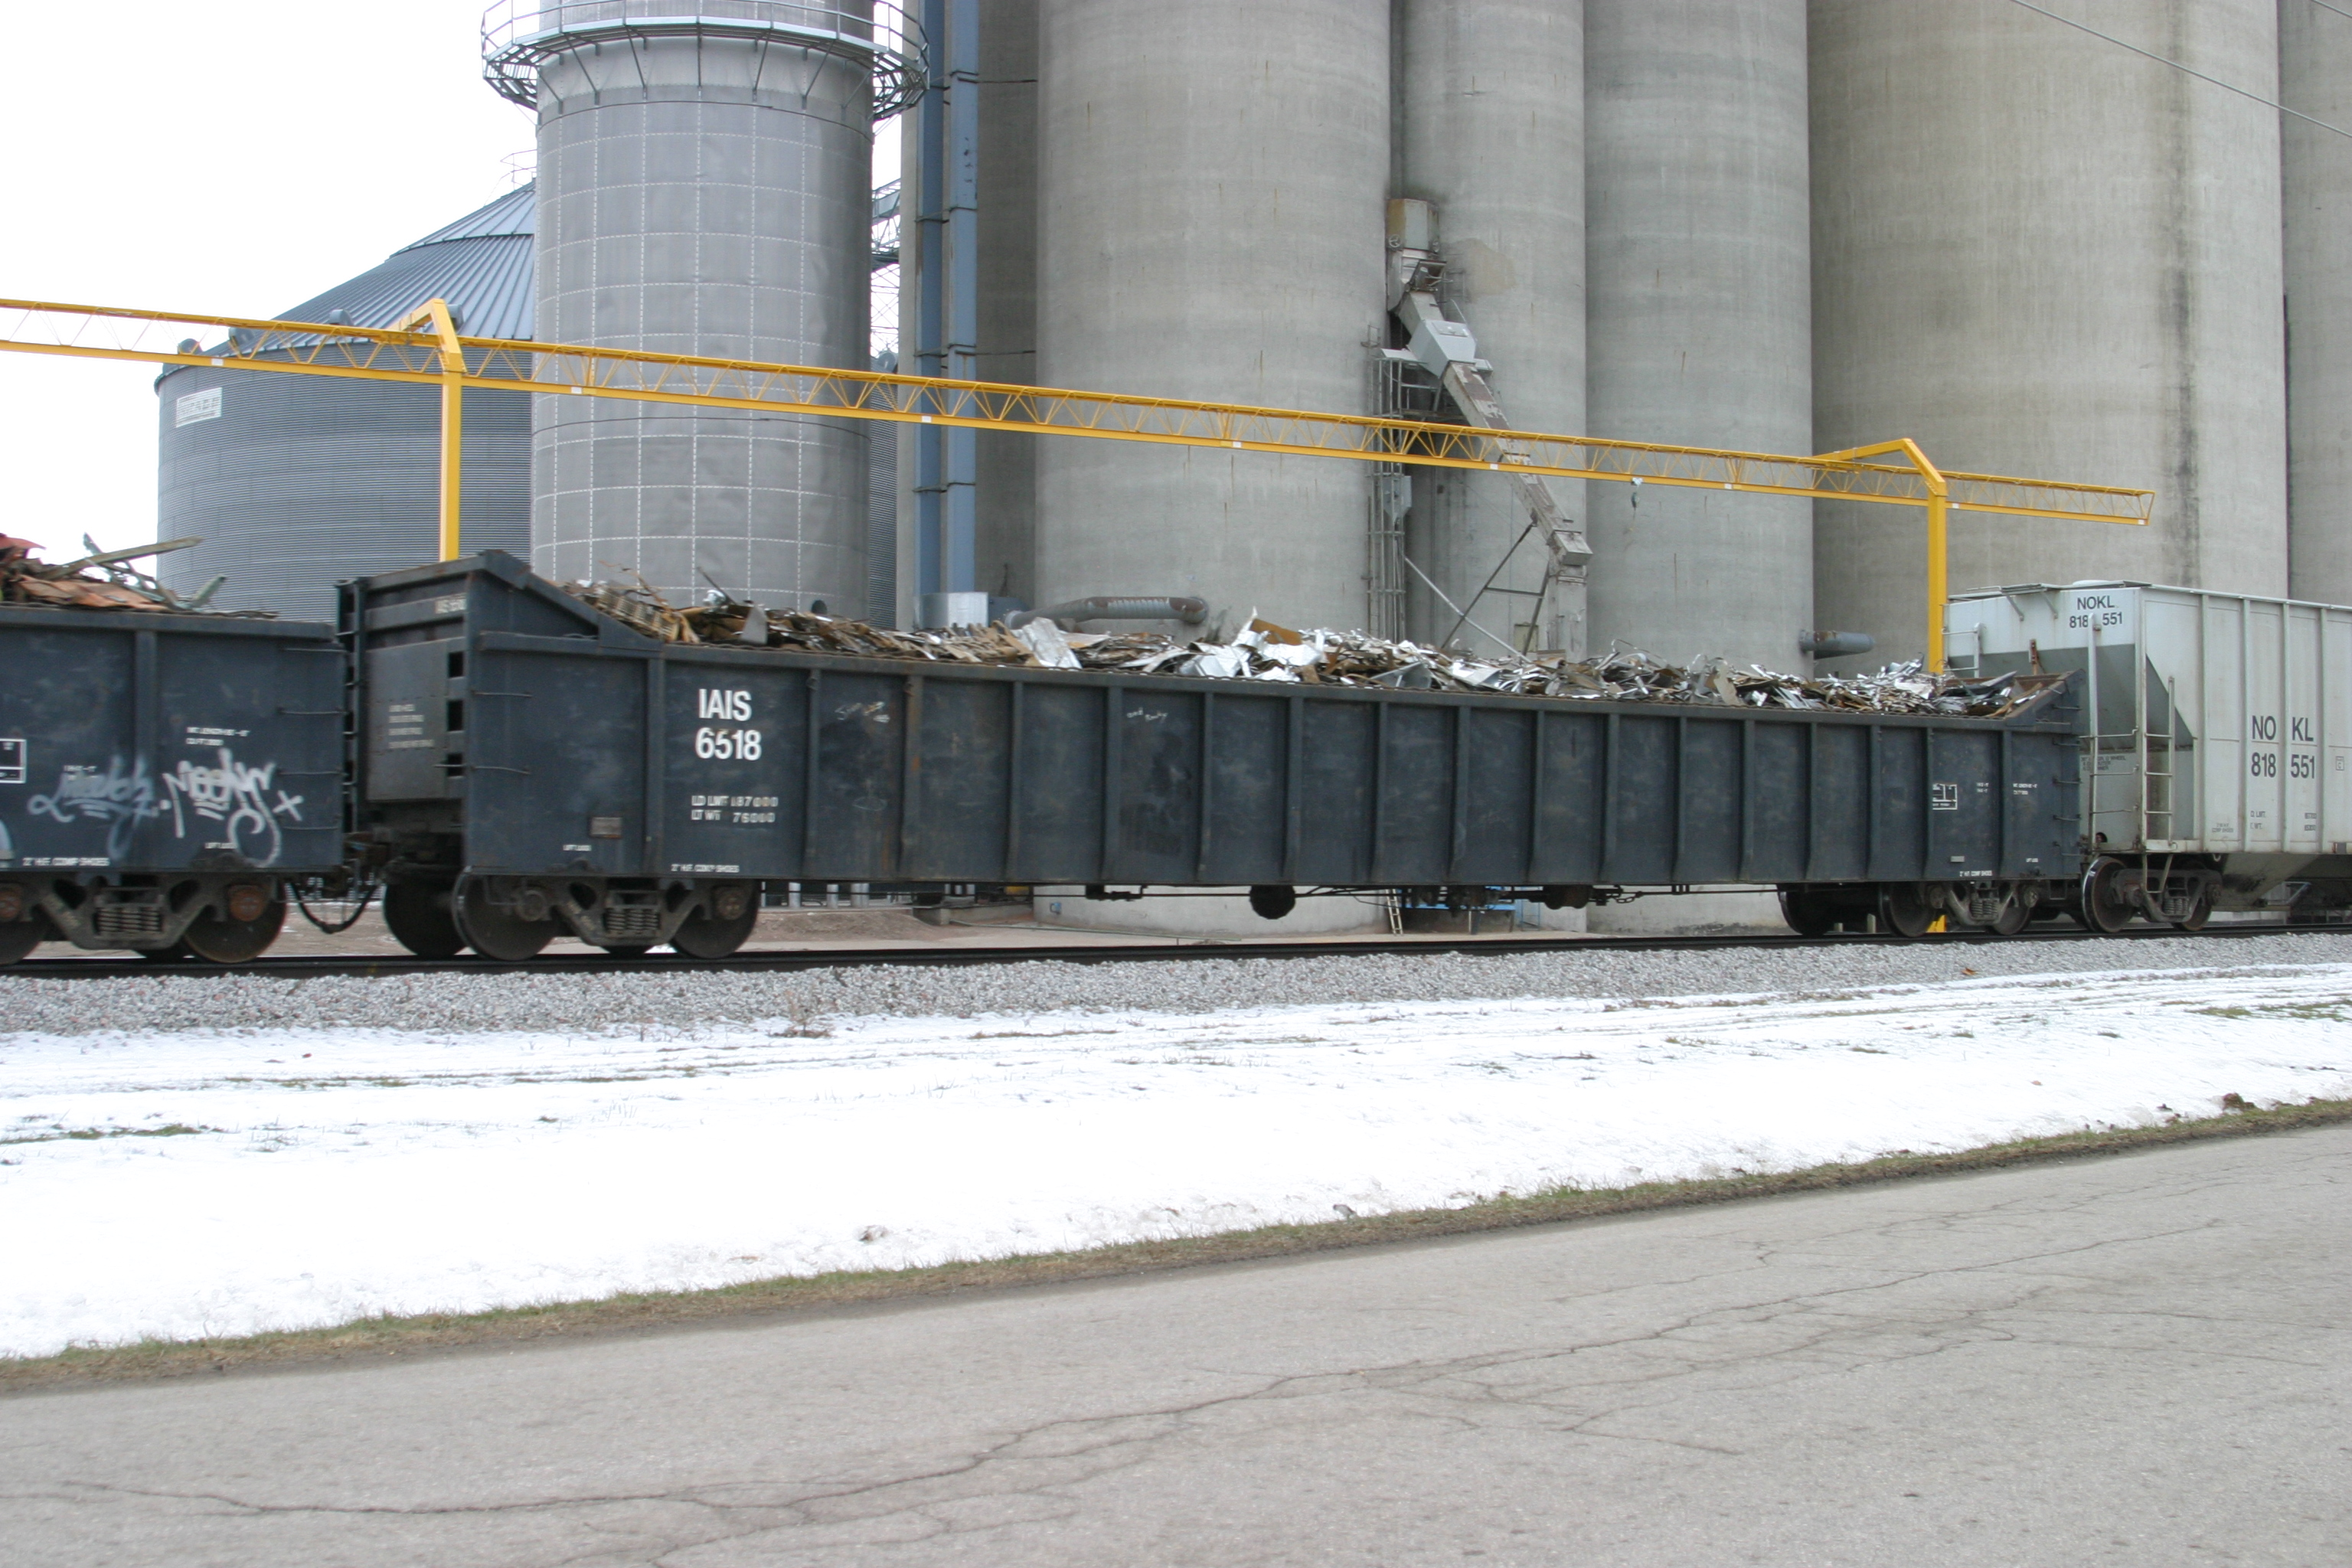 IAIS 6518 at Kellogg, IA, on 30-Dec-2005